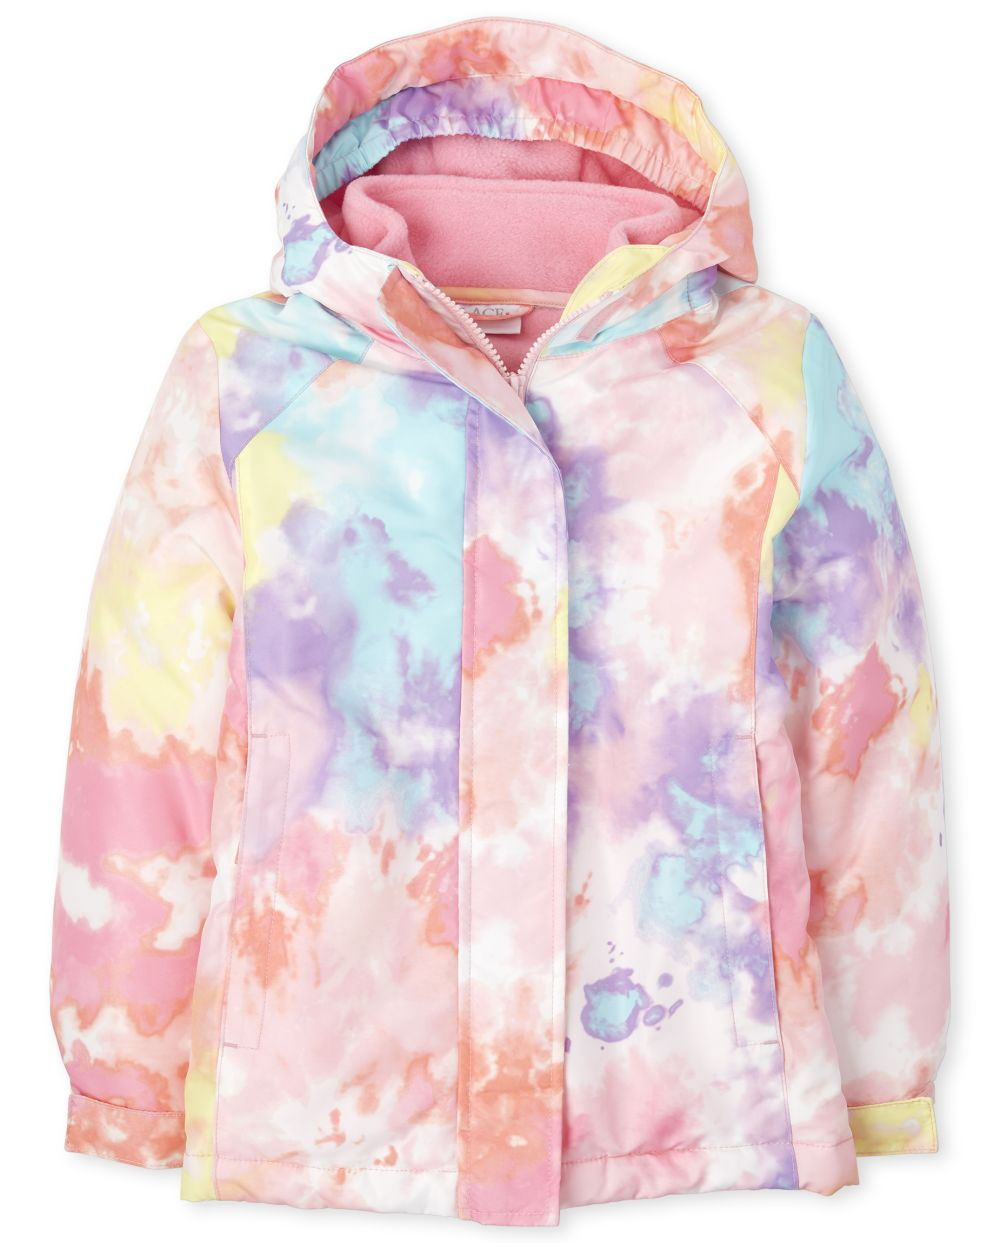 Girls Print 3 In 1 Jacket - Pink